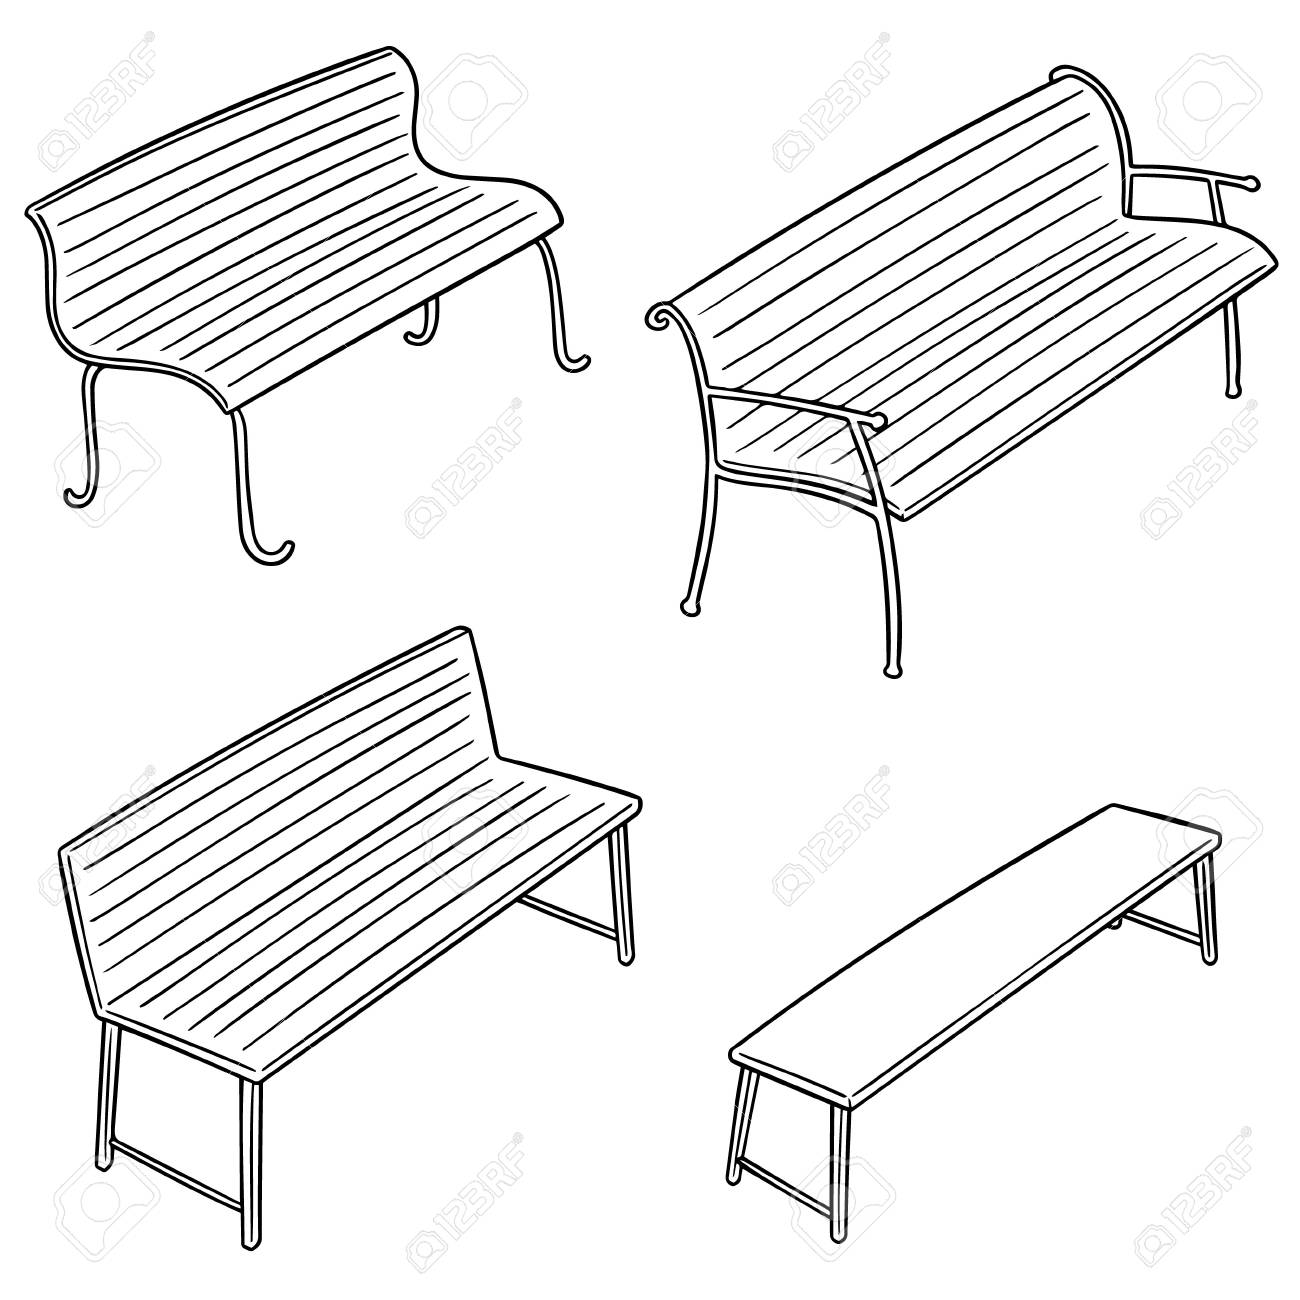 Wondrous Set Of Bench In Outlined Cartoon Illustration Machost Co Dining Chair Design Ideas Machostcouk